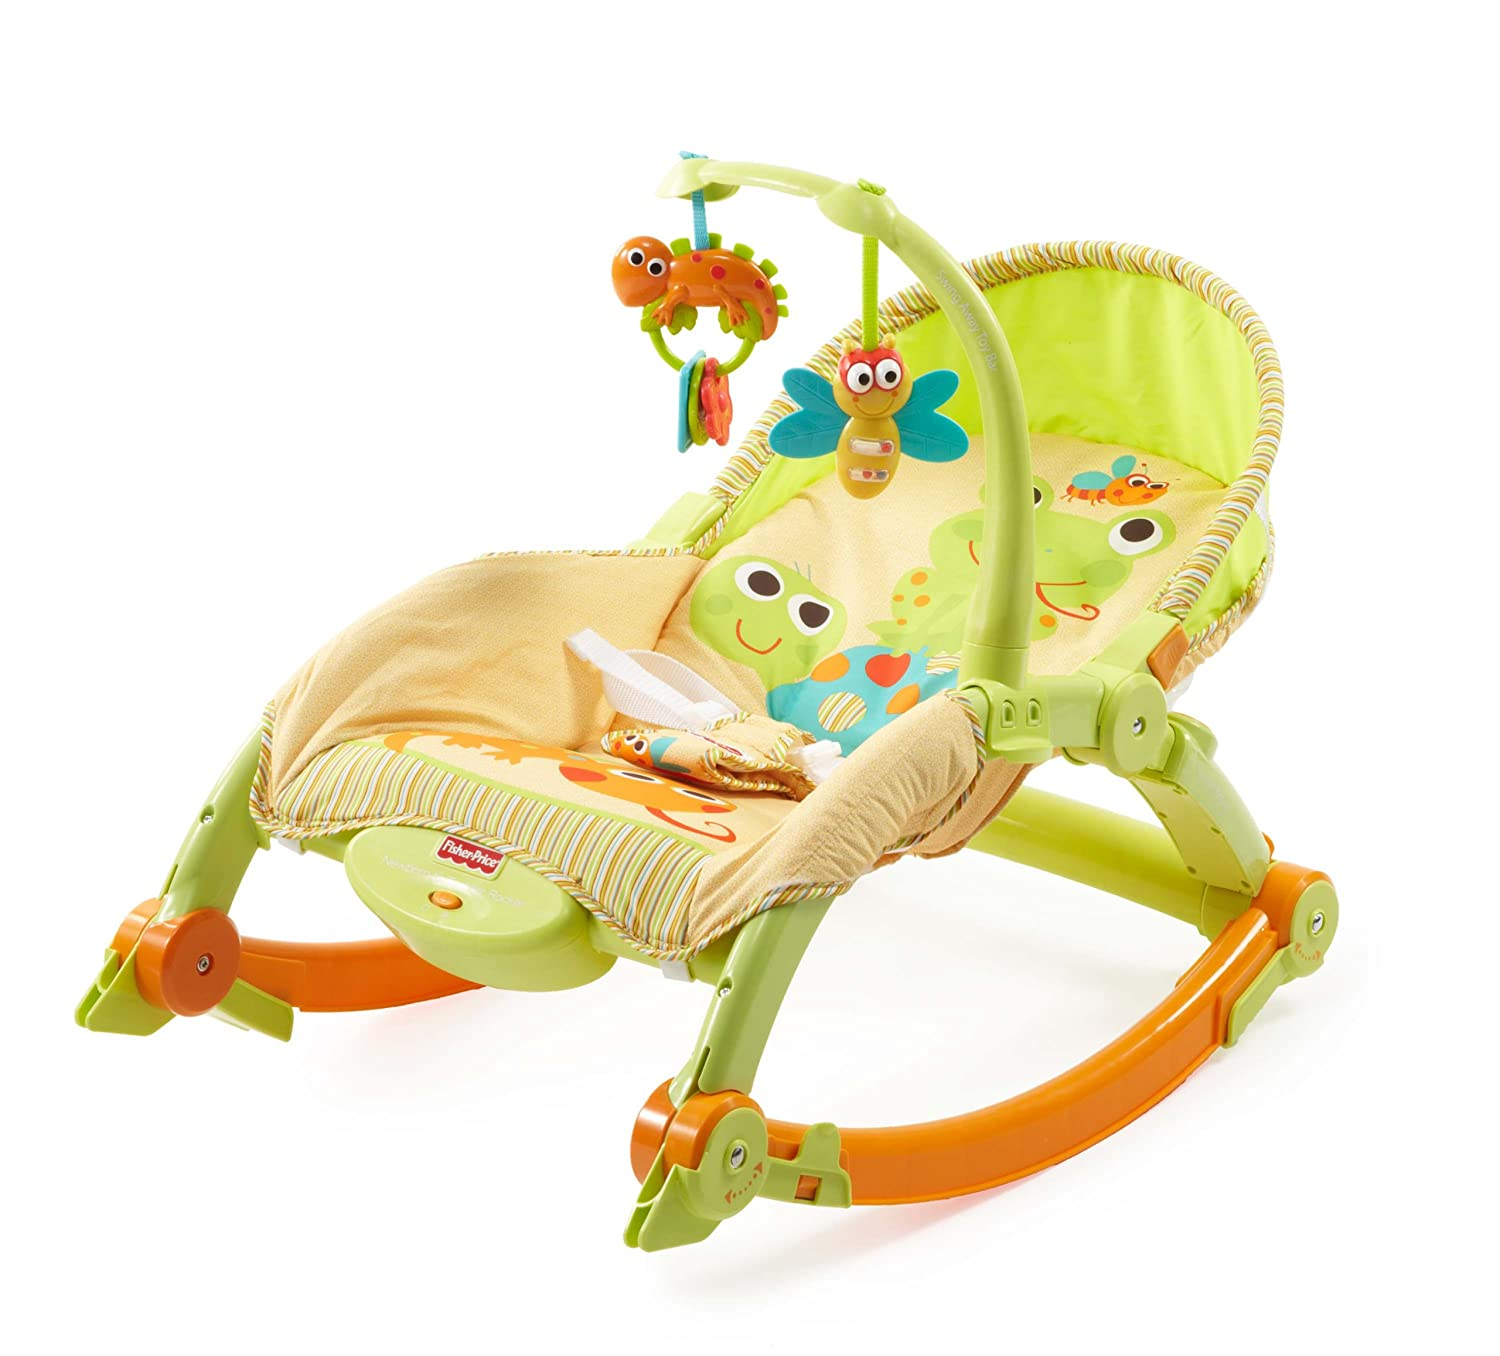 Toddler Rocker Chair Fisher Price Newborn Toddler Portable Rocker Baby Bouncer